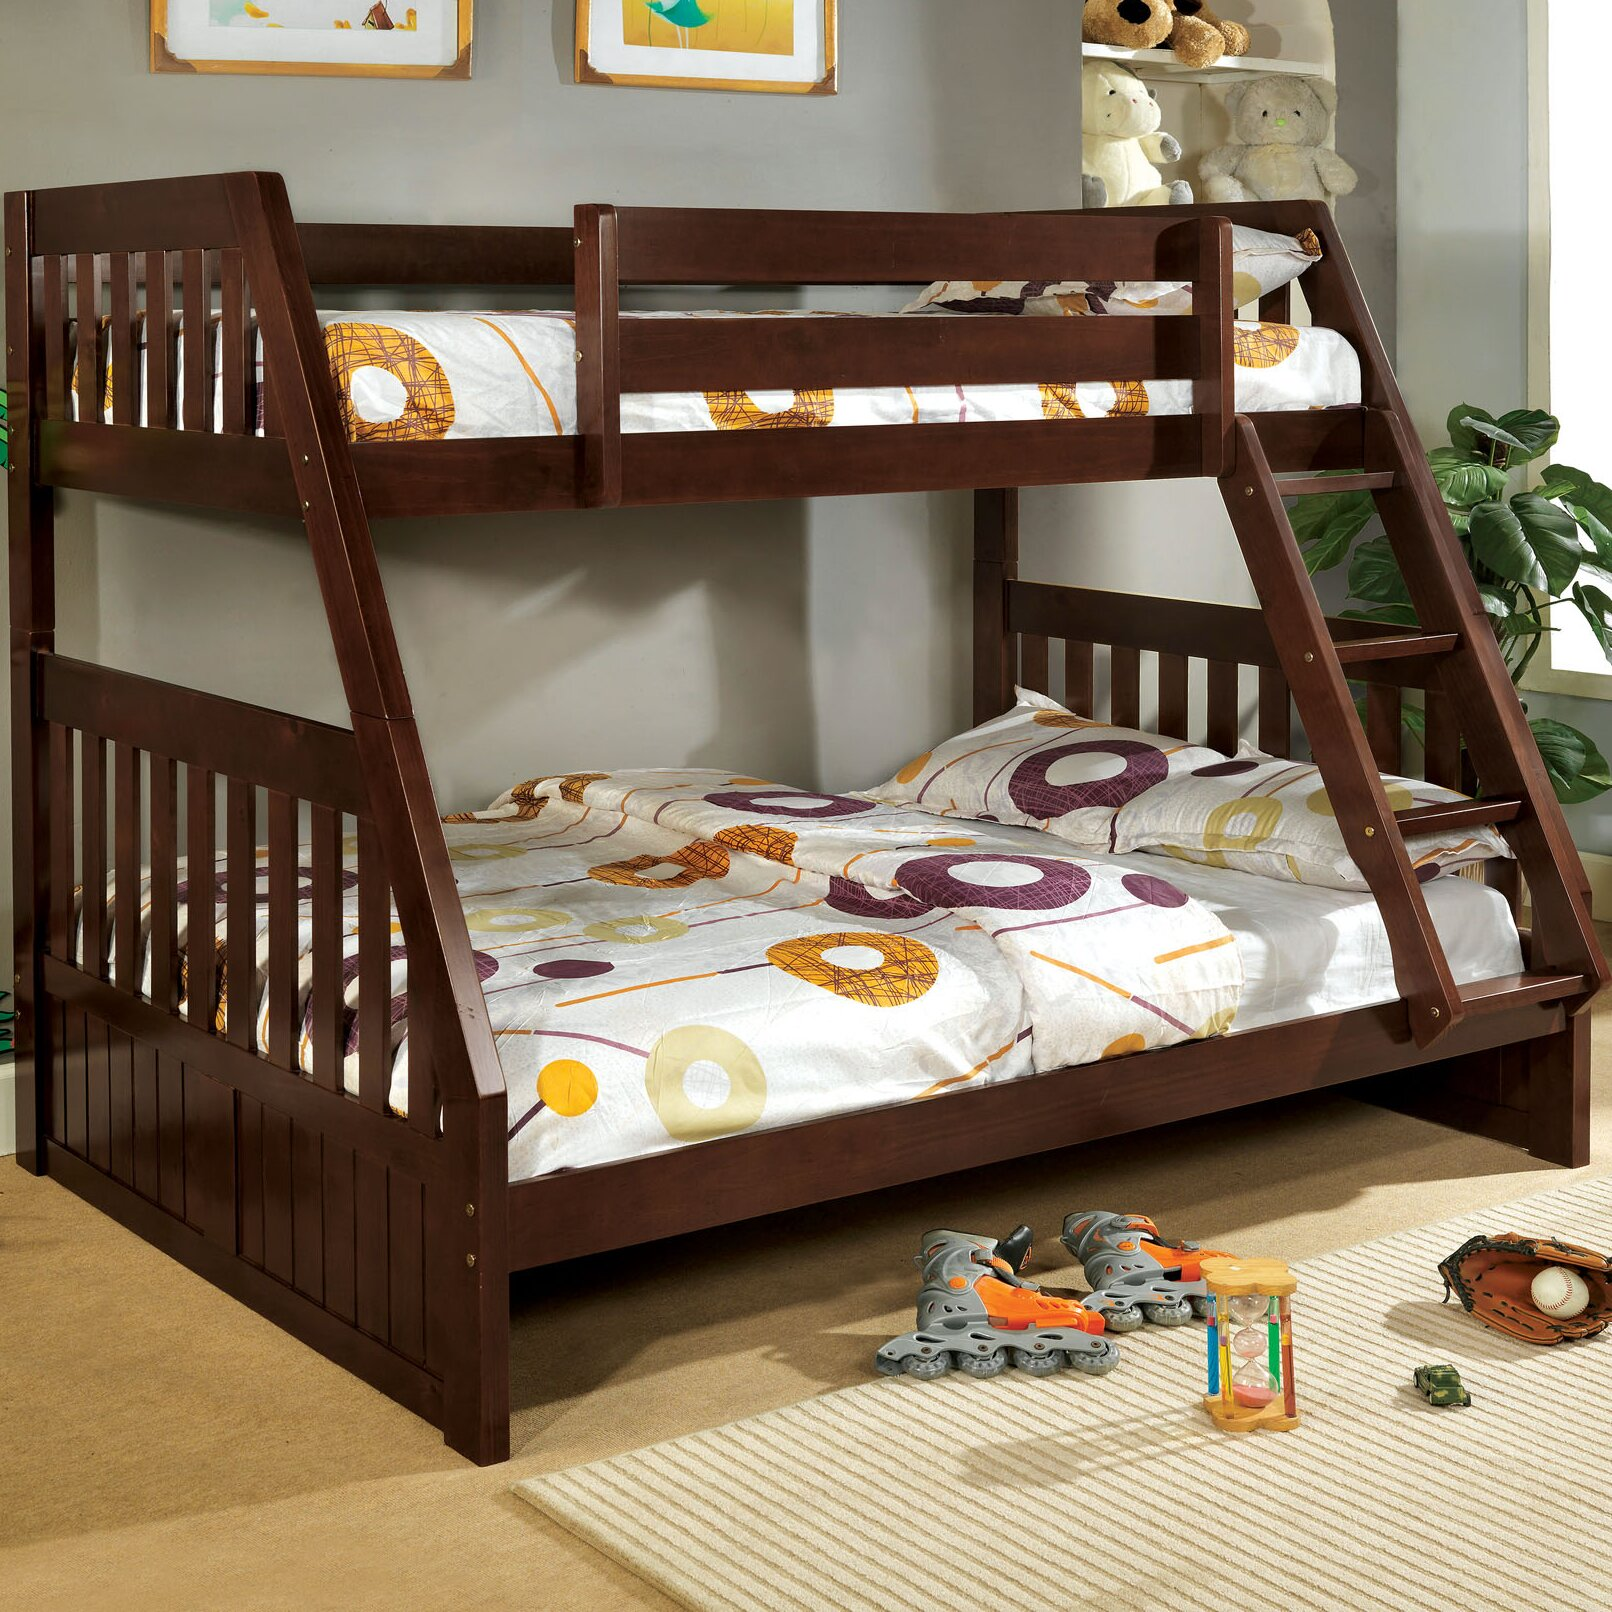 hokku designs logan twin over full bunk bed reviews wayfair. Black Bedroom Furniture Sets. Home Design Ideas